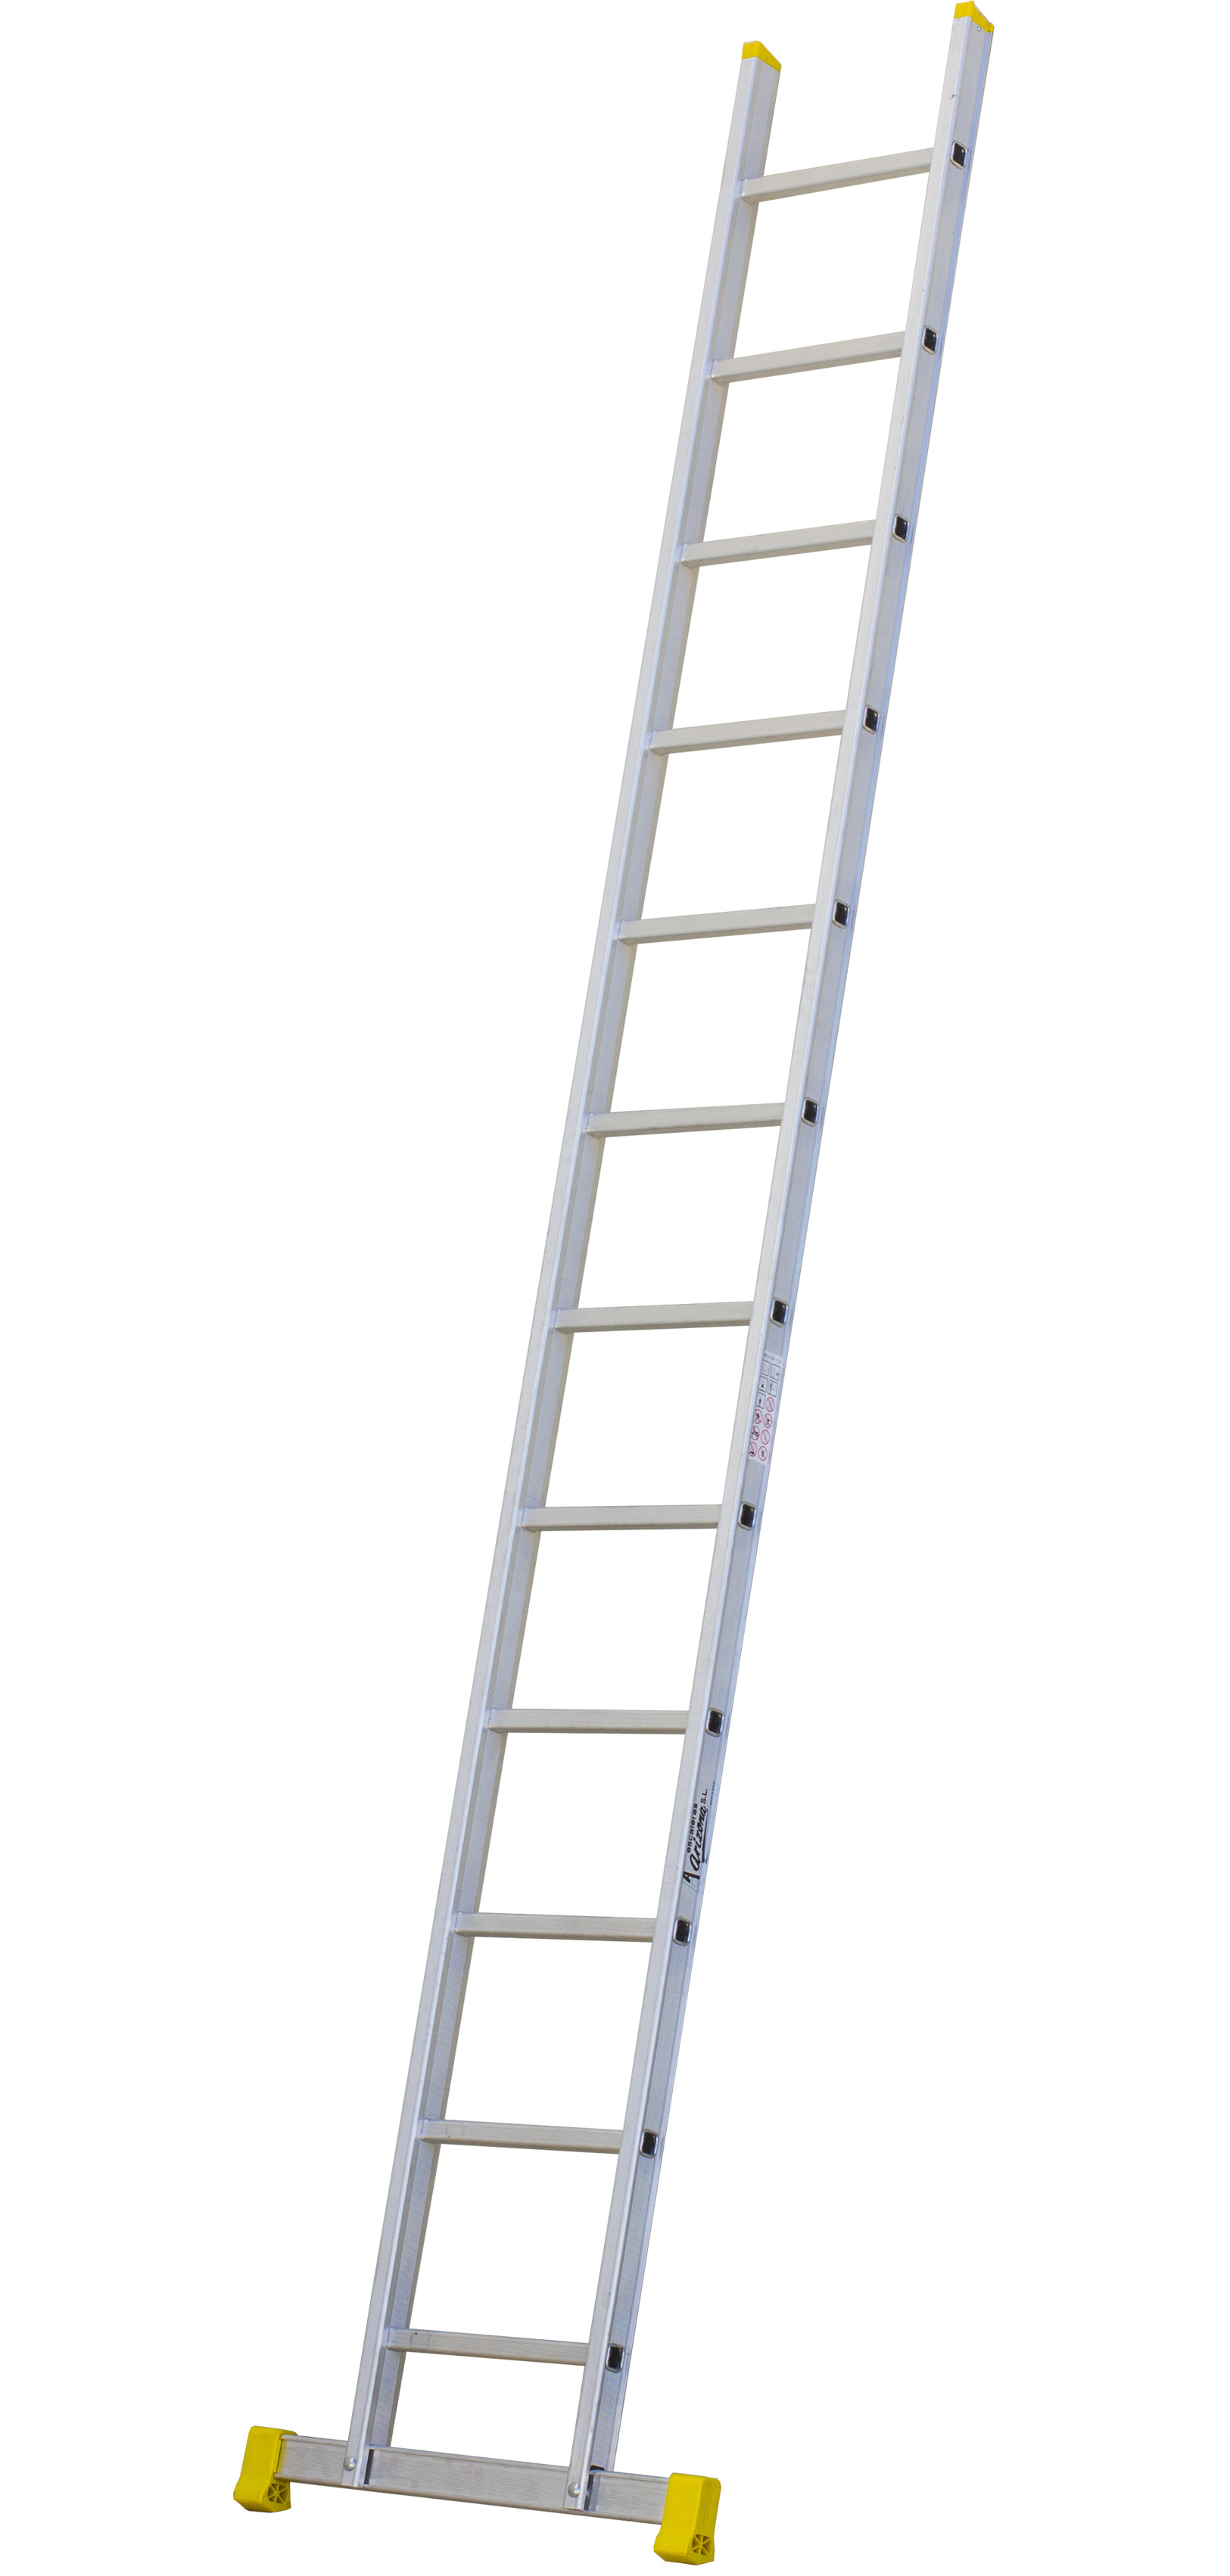 Aluminium Single-section Ladder